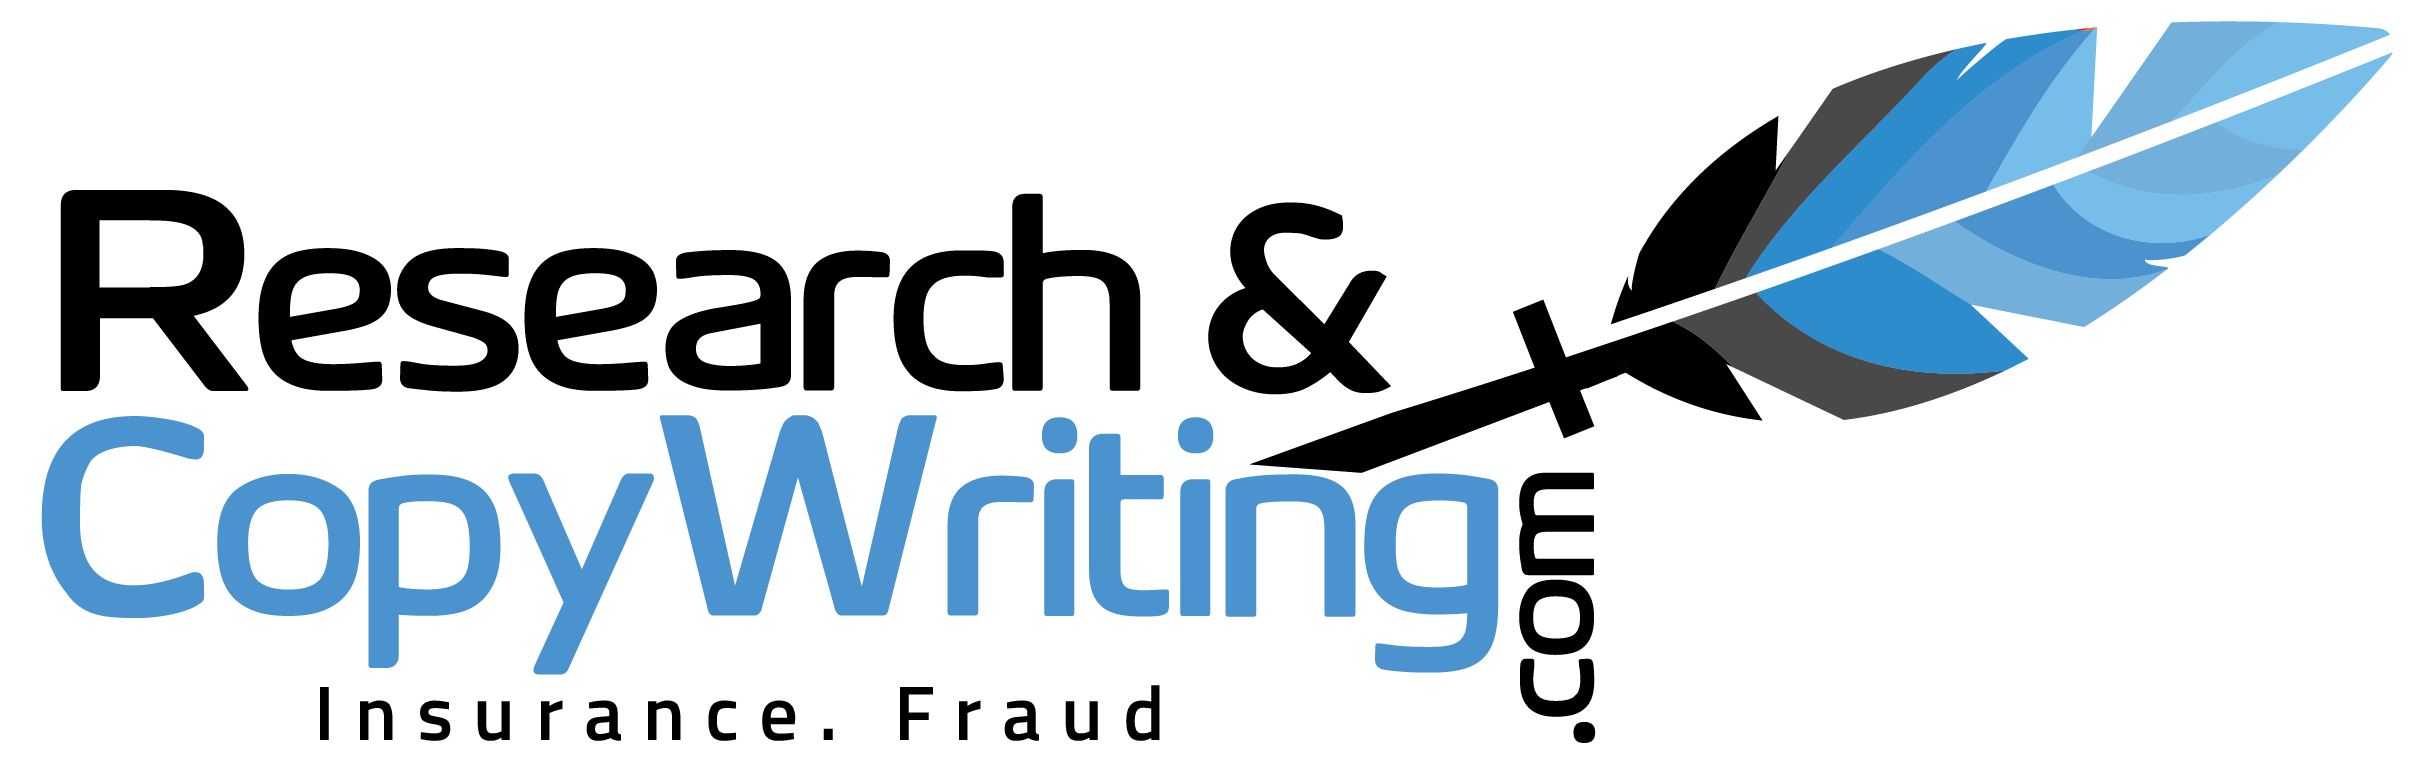 Research and Copywriting